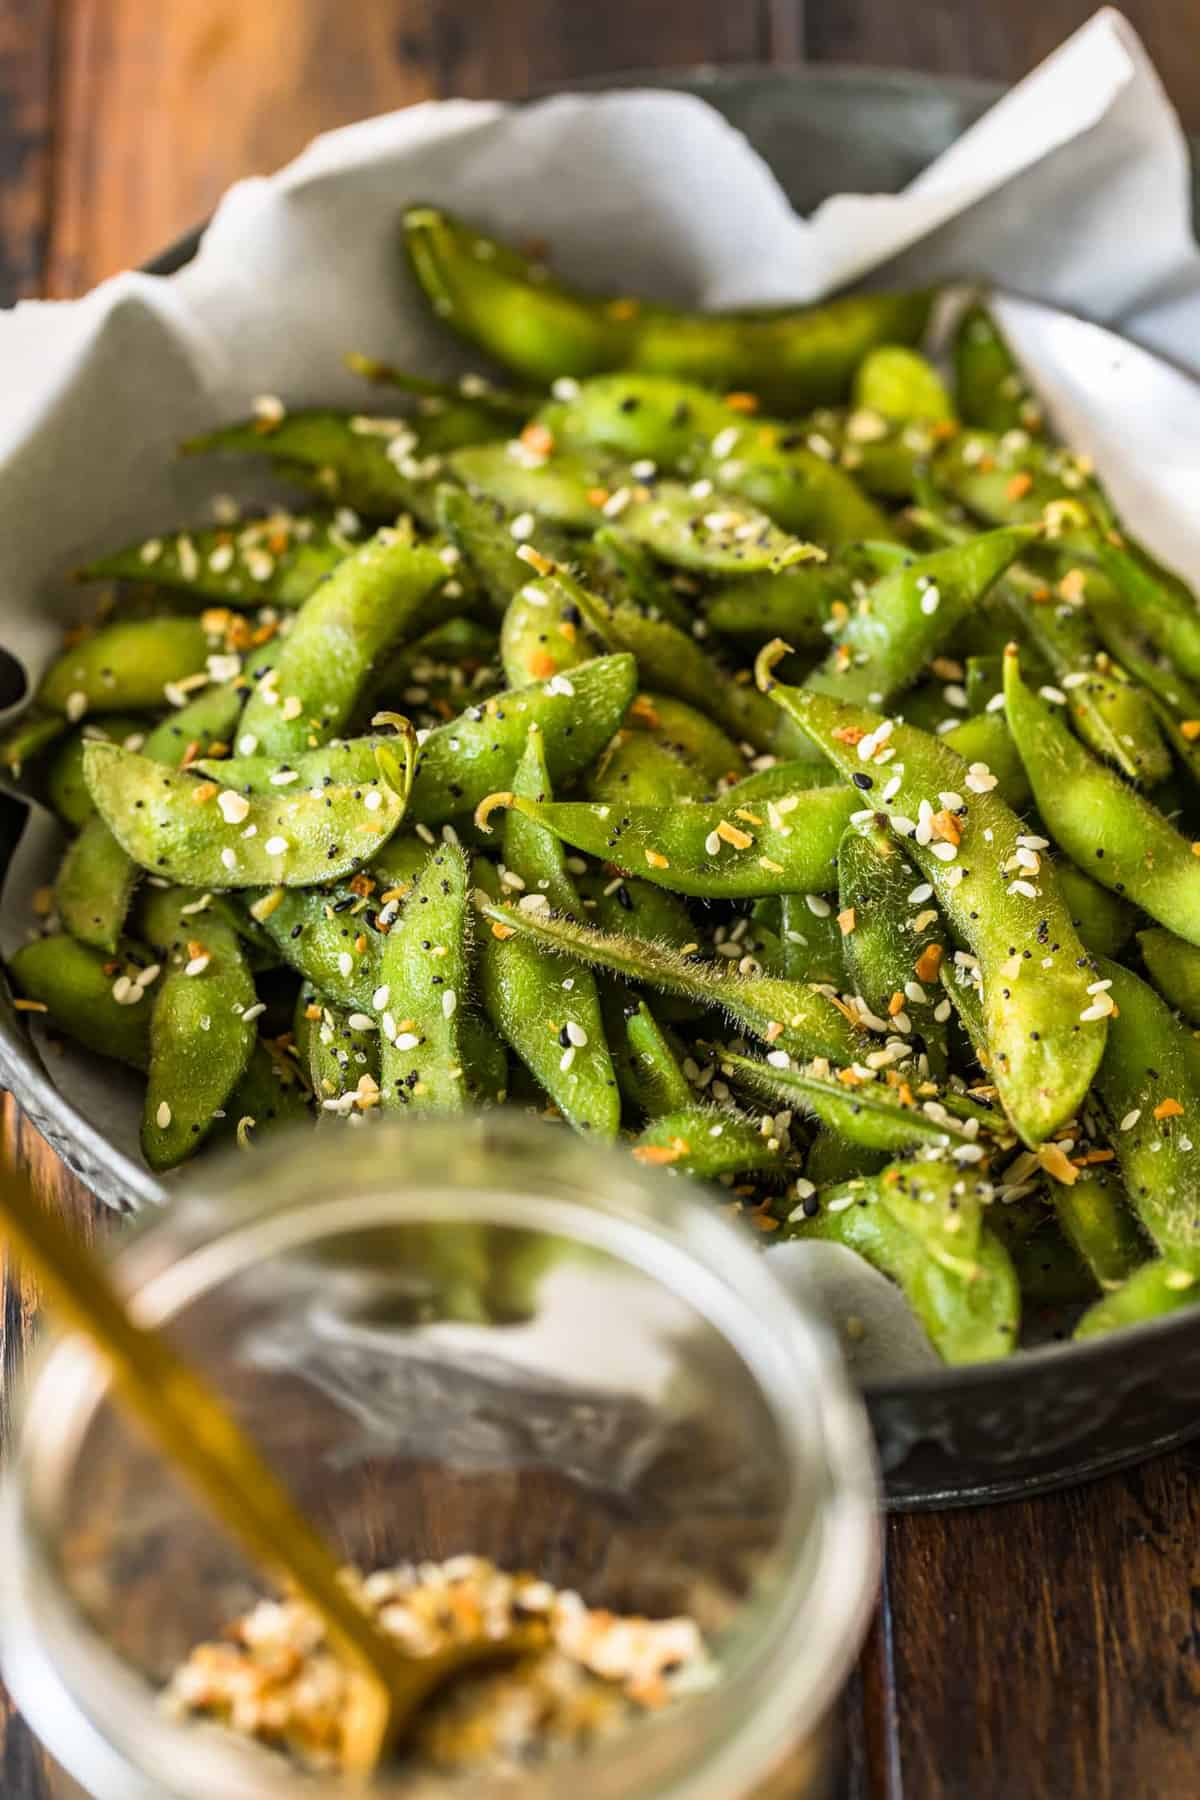 A close up view of bright green edamame seasoned well